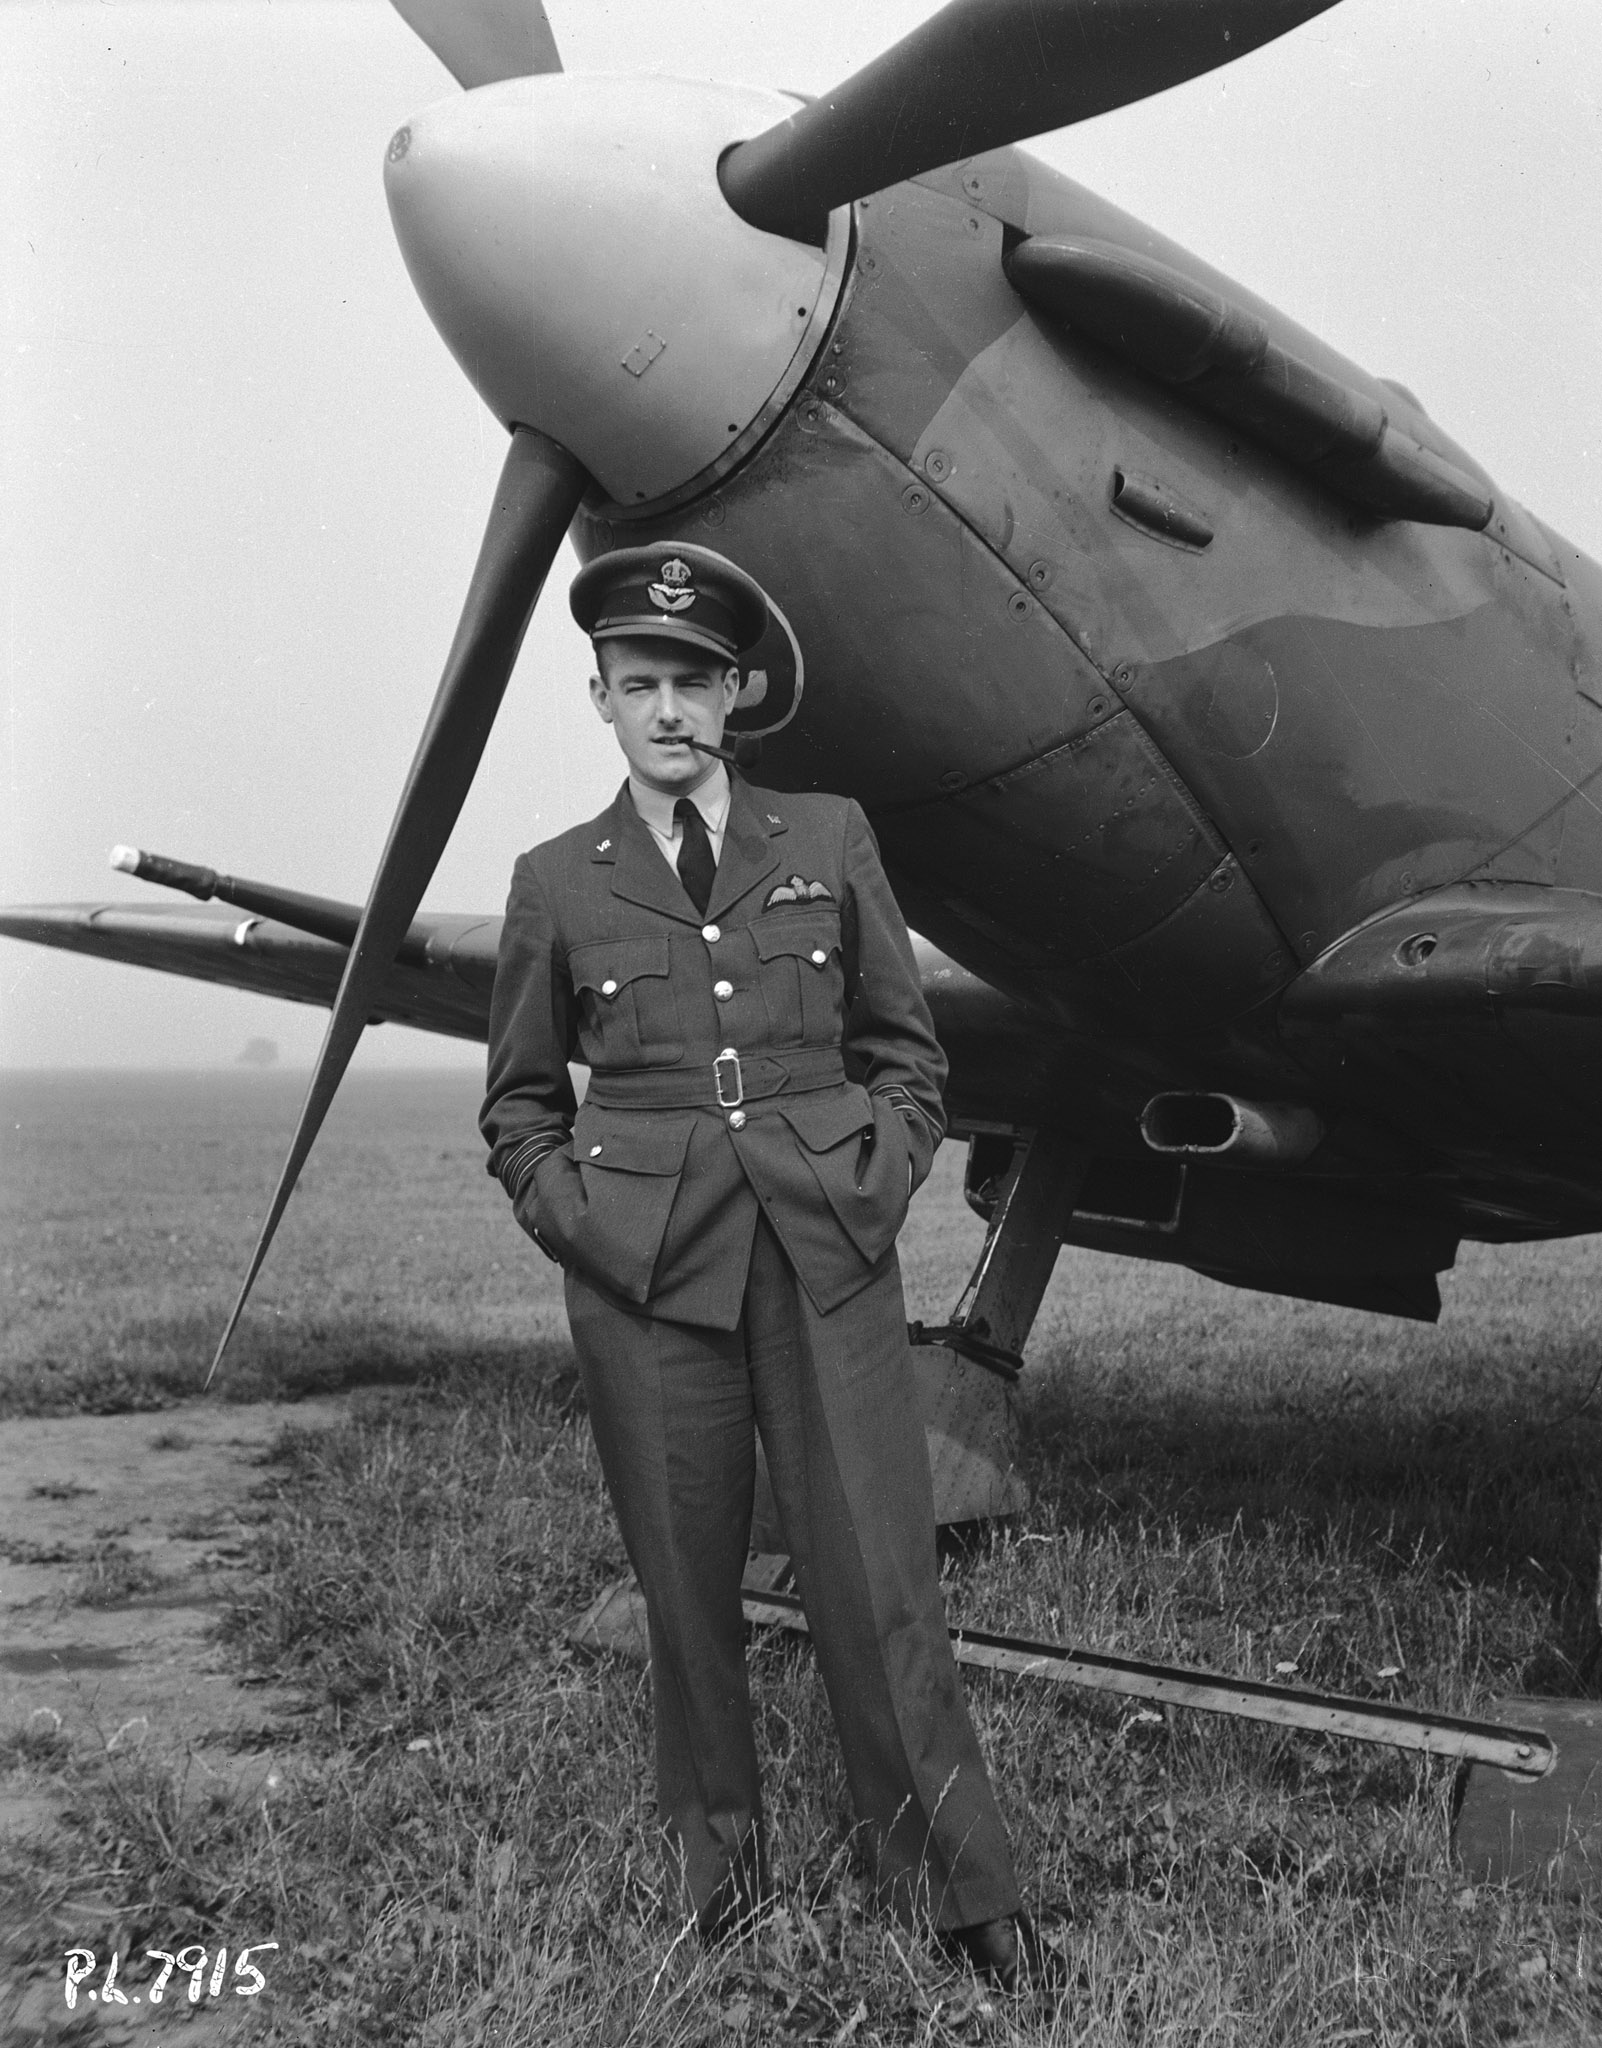 A black and white photo of a man wearing an air force dress uniform and hat, with his hands in his pockets and smoking a pipe, standing in front of an old propeller-driven aircraft.